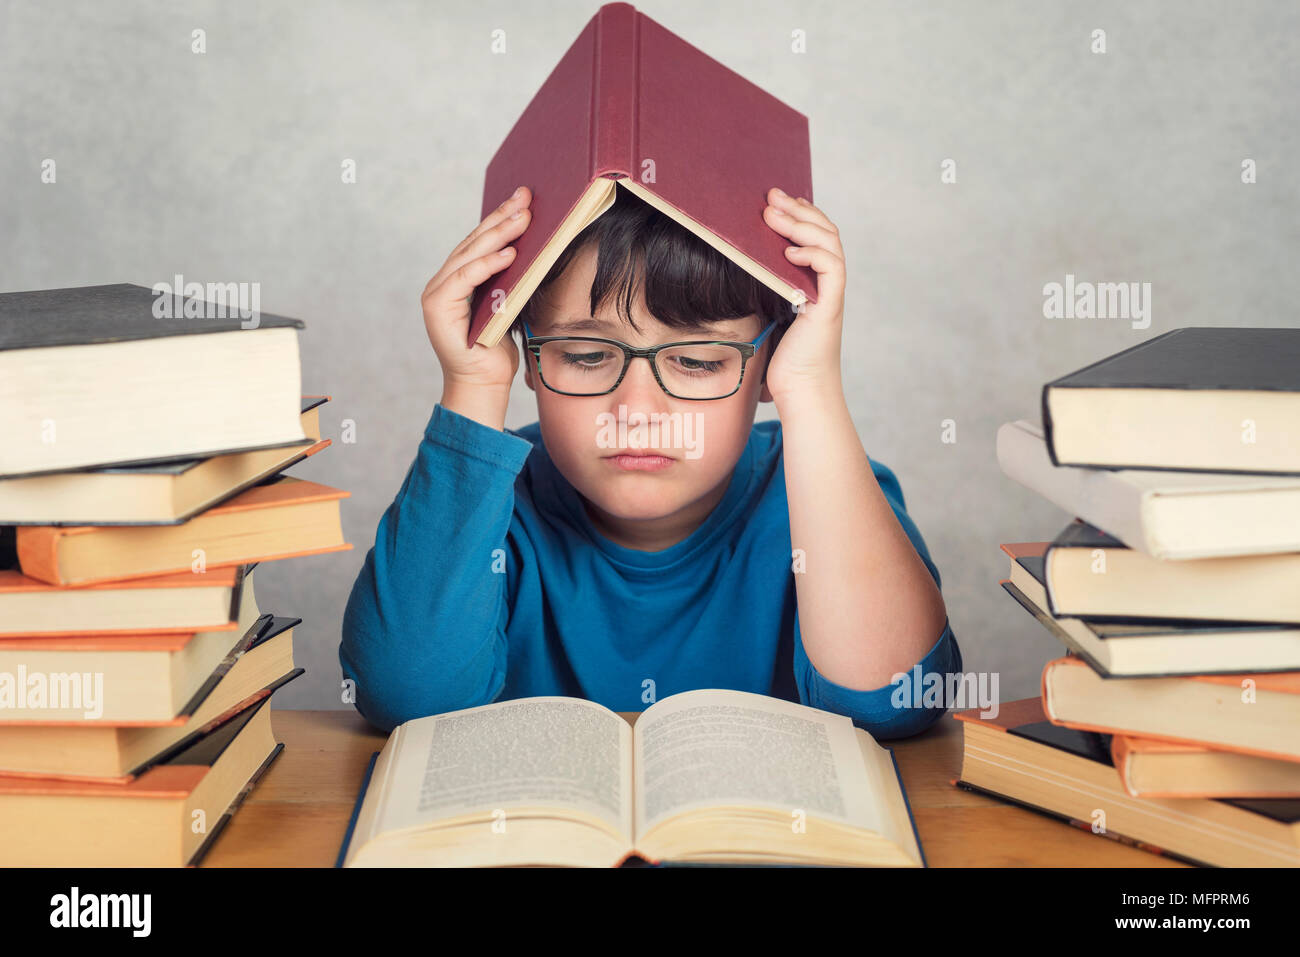 sad and pensive boy with books on a table - Stock Image